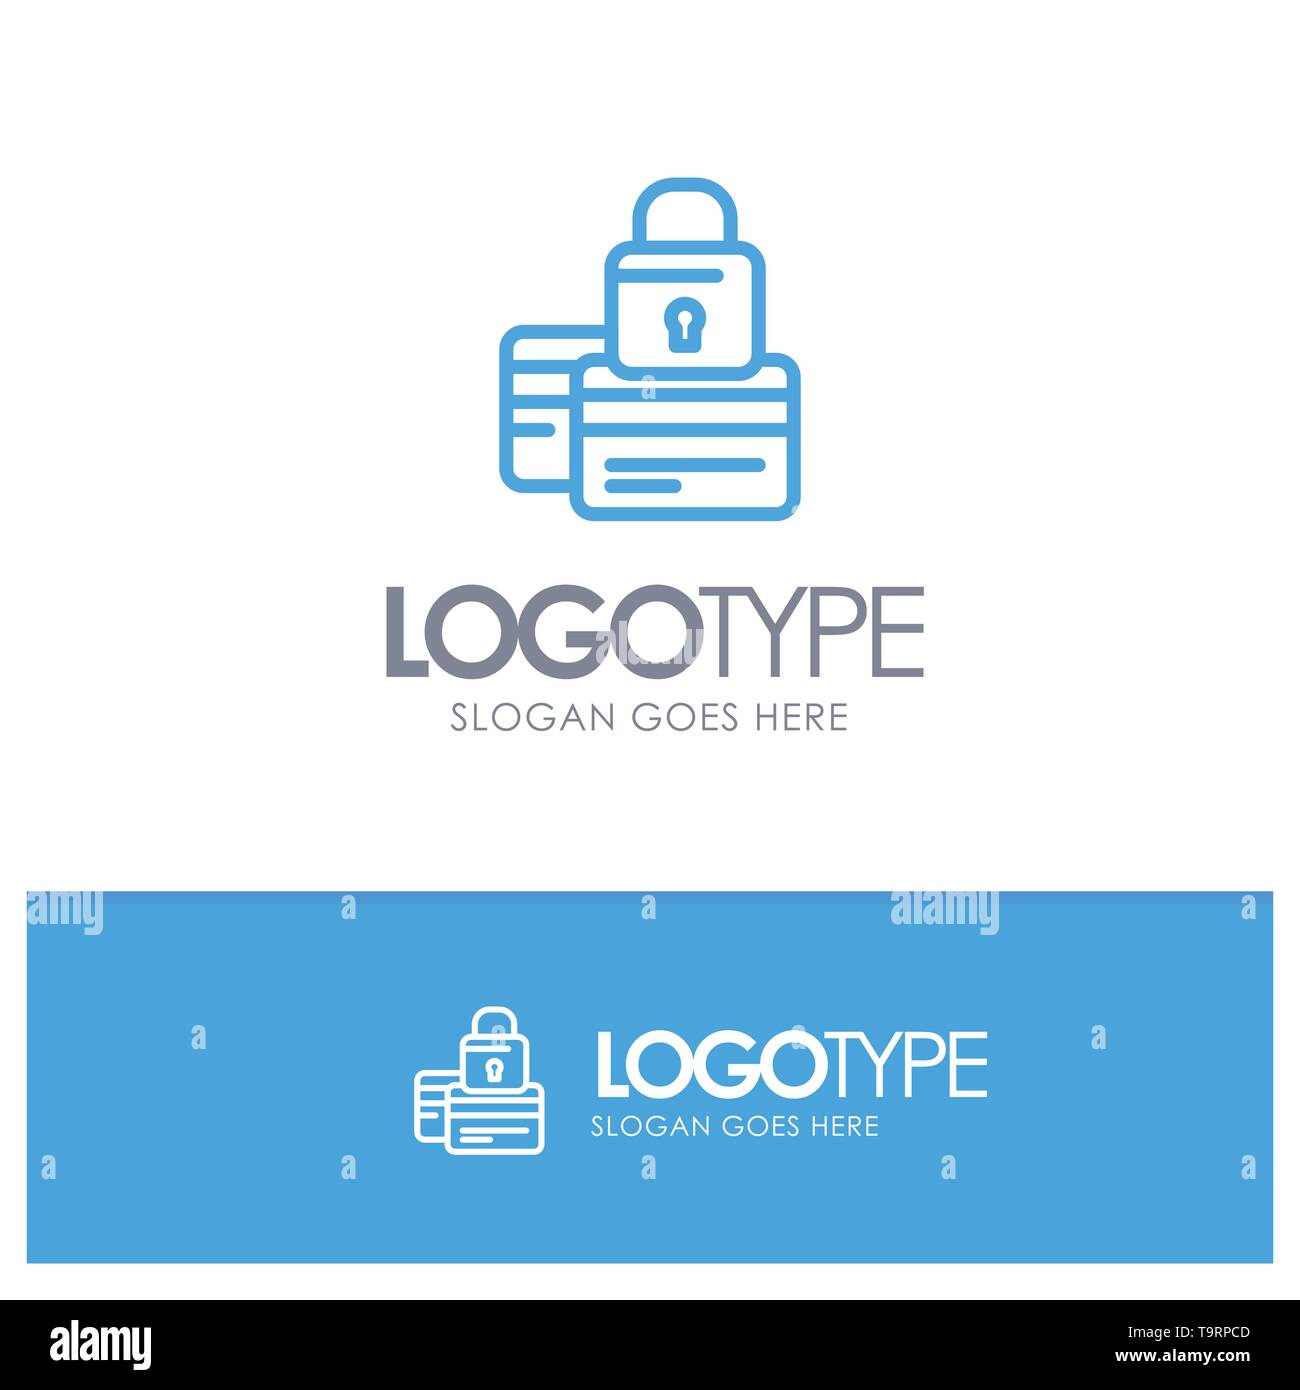 Banking, Card, Credit, Payment, Secure, Security Blue Outline Logo Place for Tagline - Stock Image